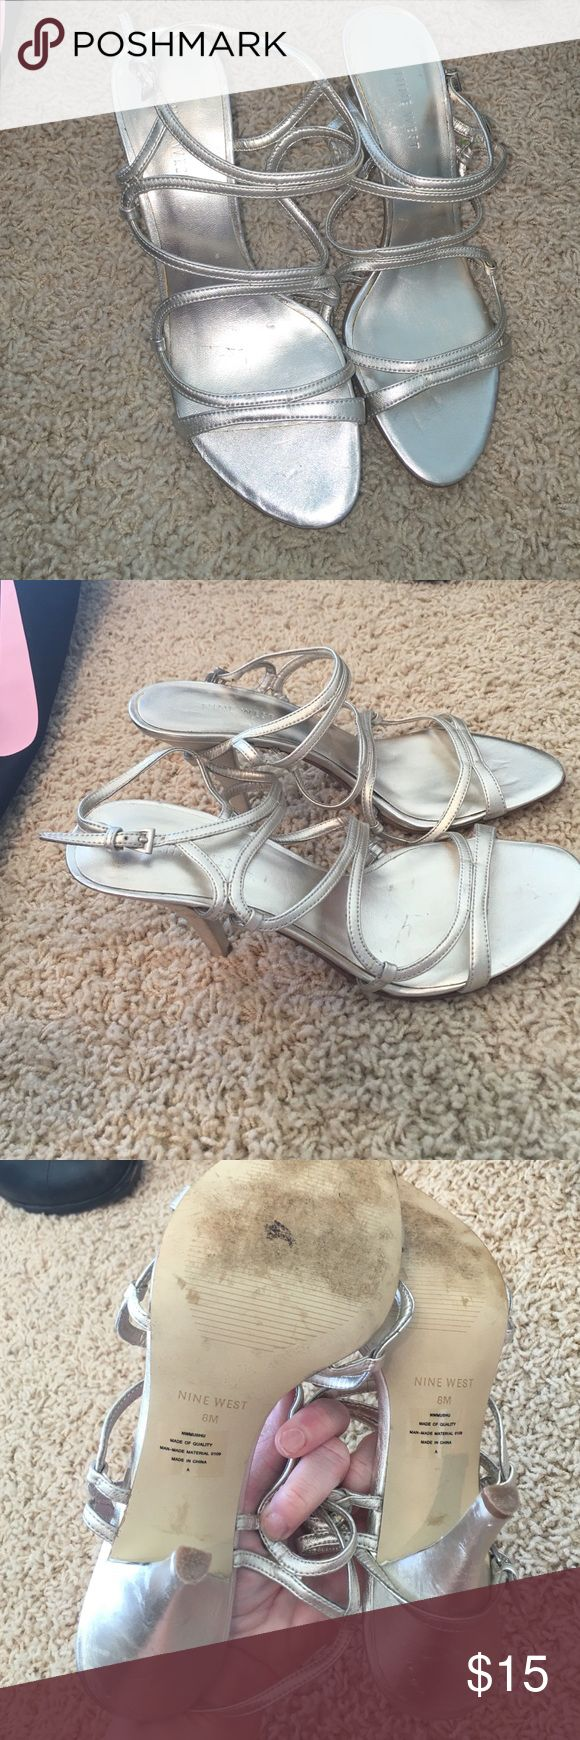 """Nine West 1"""" Heel Gold Strappy Sandals Please see pics for slight damage. Still very pretty! Lots of life left. Very comfy.. Wore once.. They've just been thrown around from closet to closet. Downsizing :) 7.5 fits true to size Nine West Shoes Sandals"""